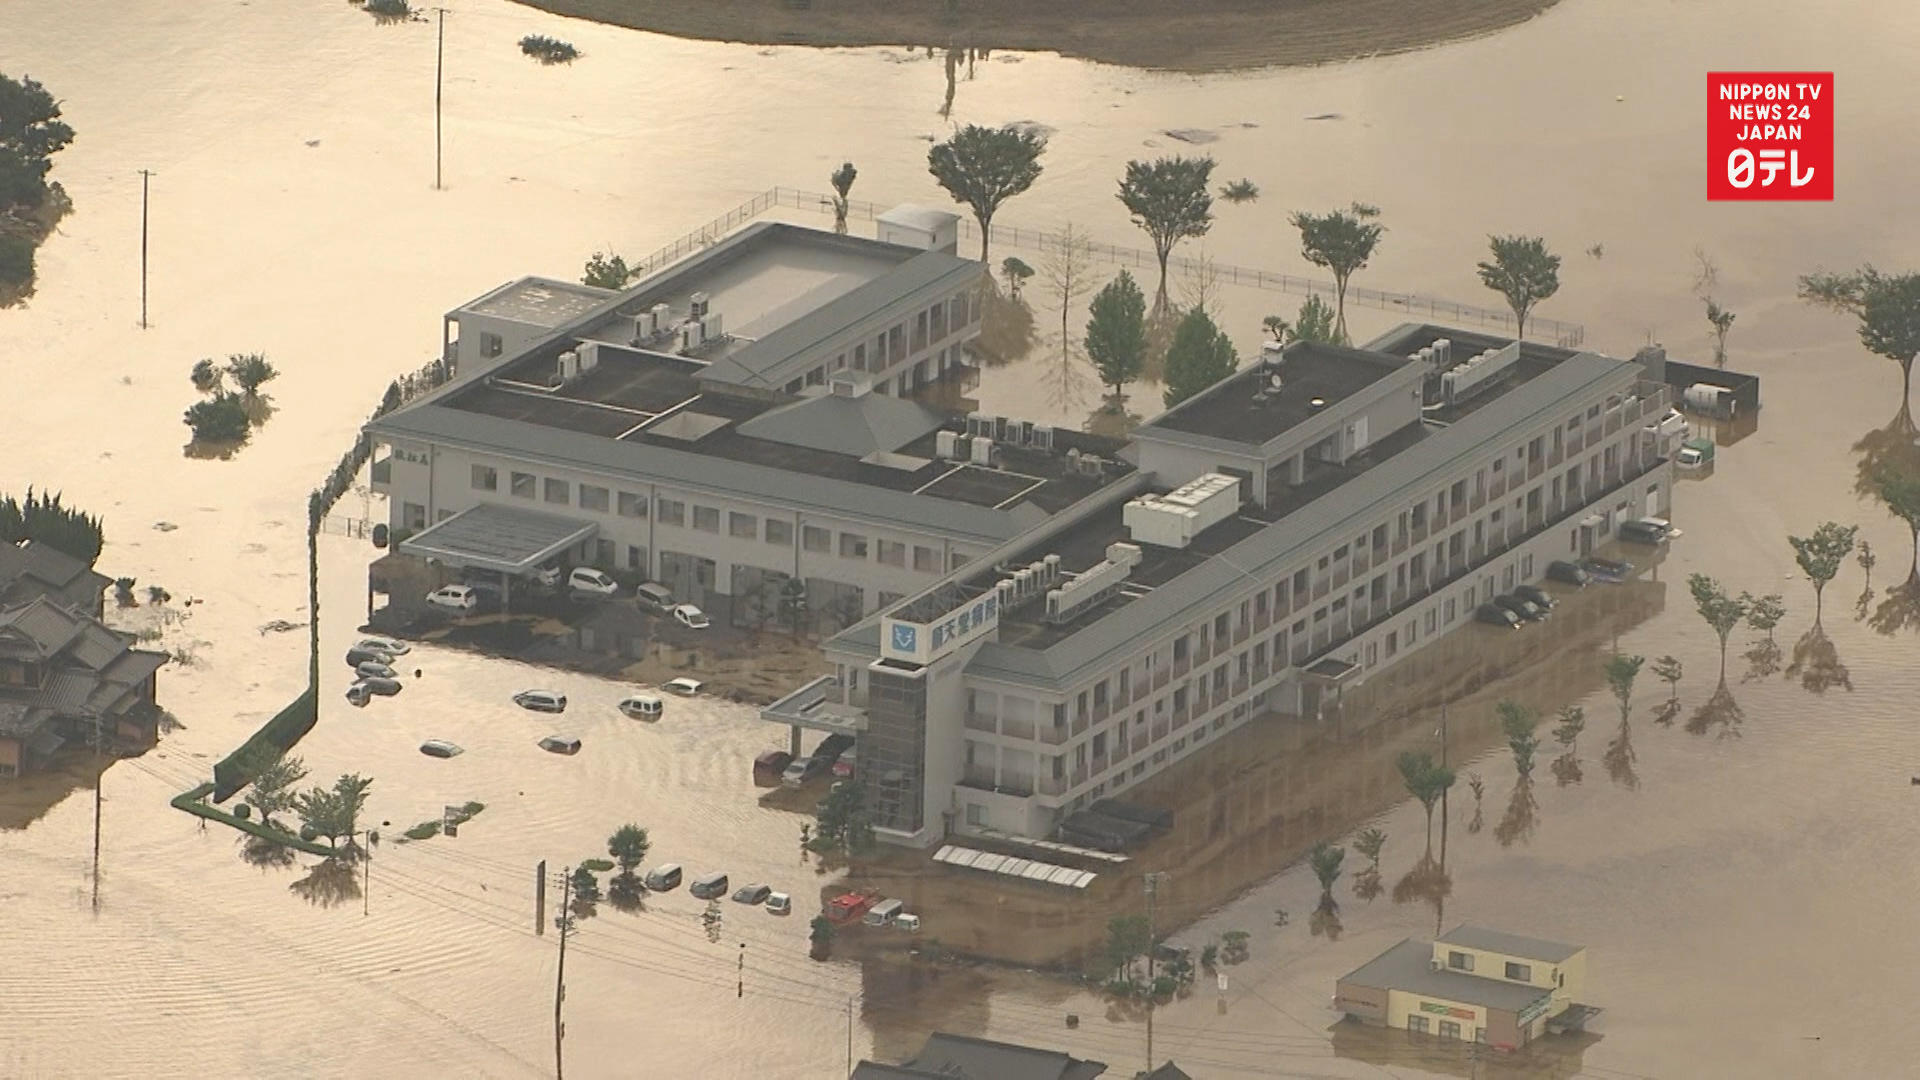 200 stranded in flooded hospital